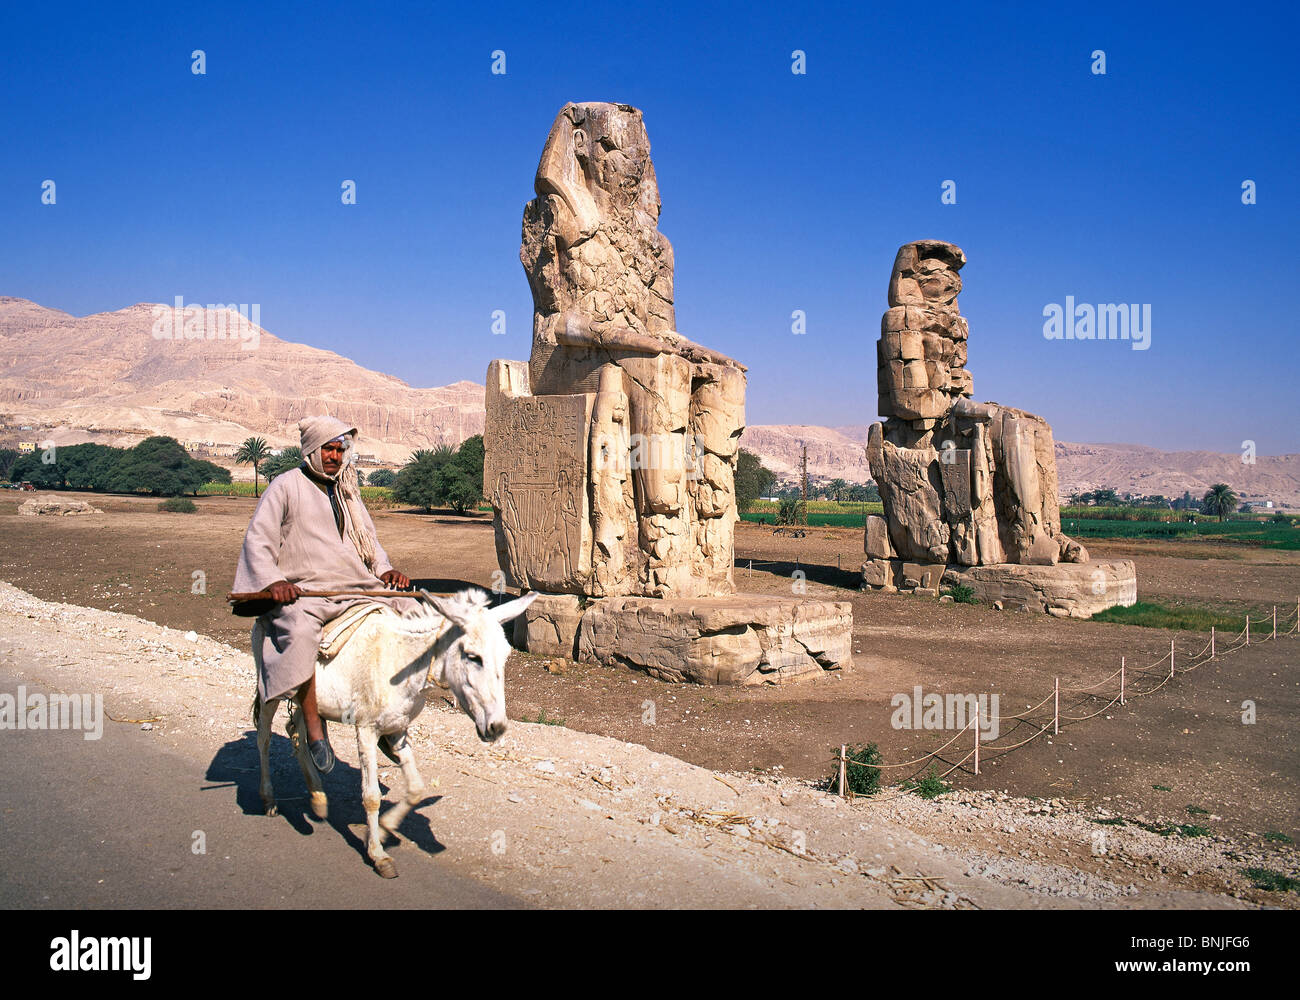 Egypt March 2007 Luxor city Colossi of Memnon ancient historic culture donkey man riding - Stock Image